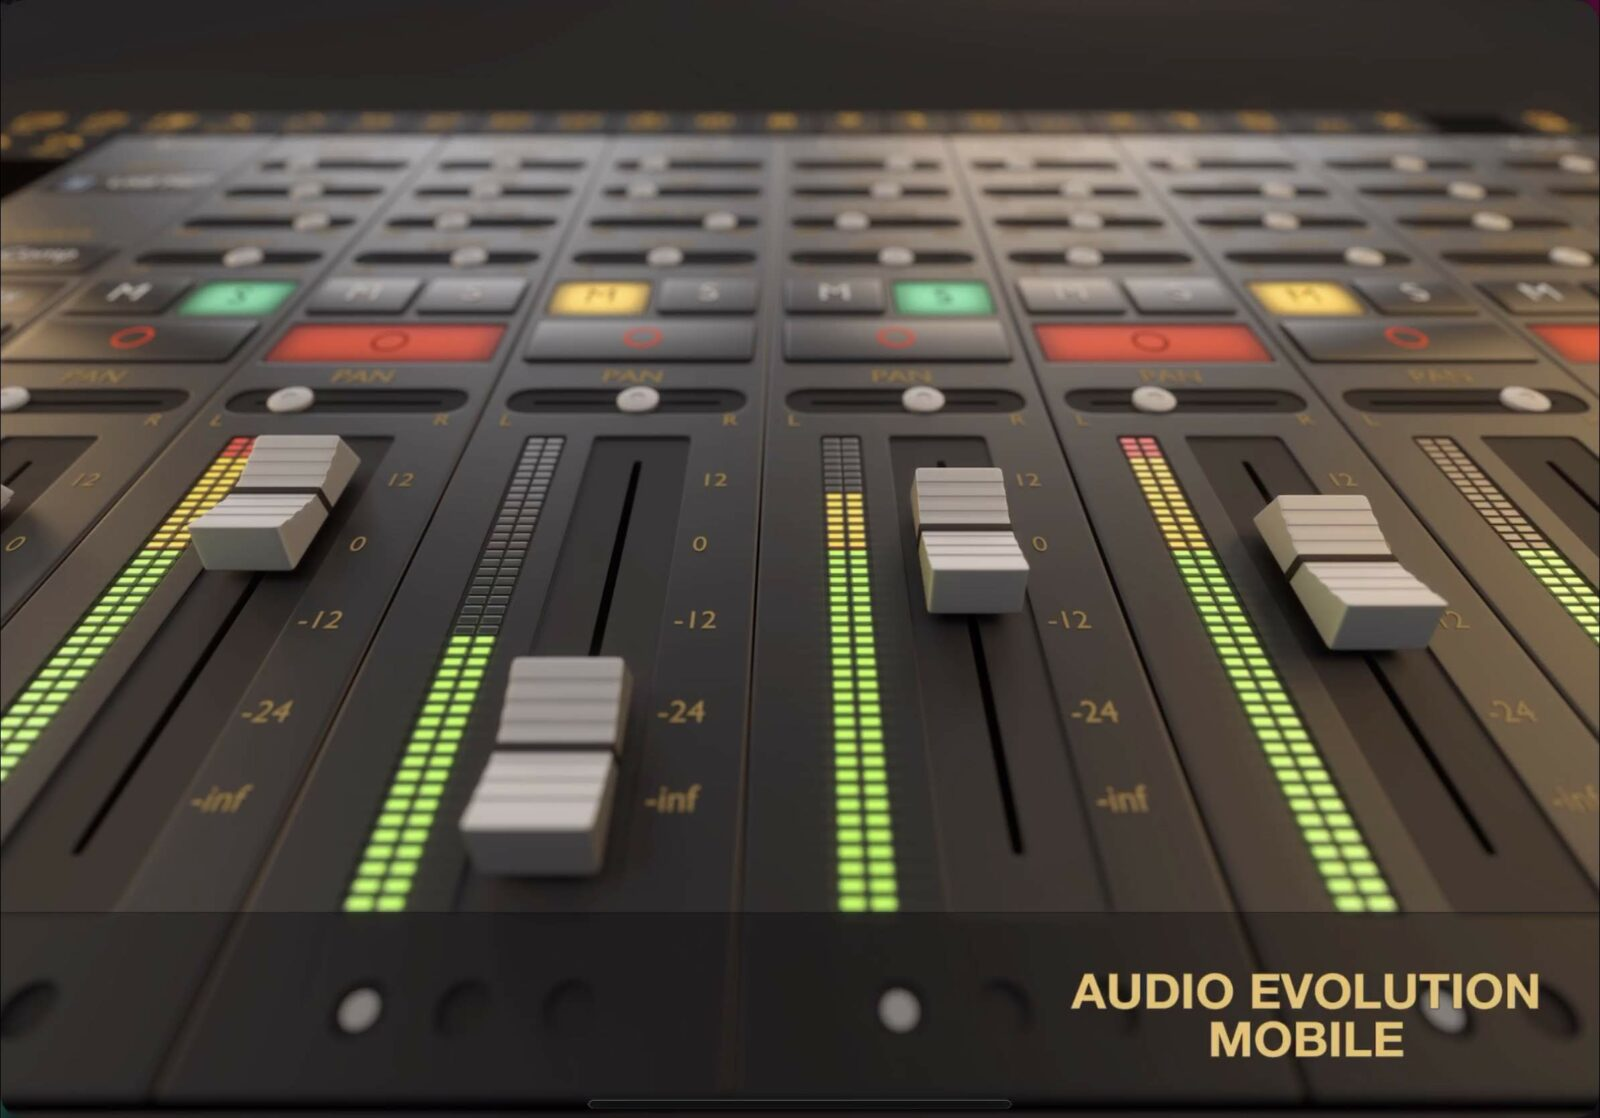 Audio Evolution Mobile: Video Review